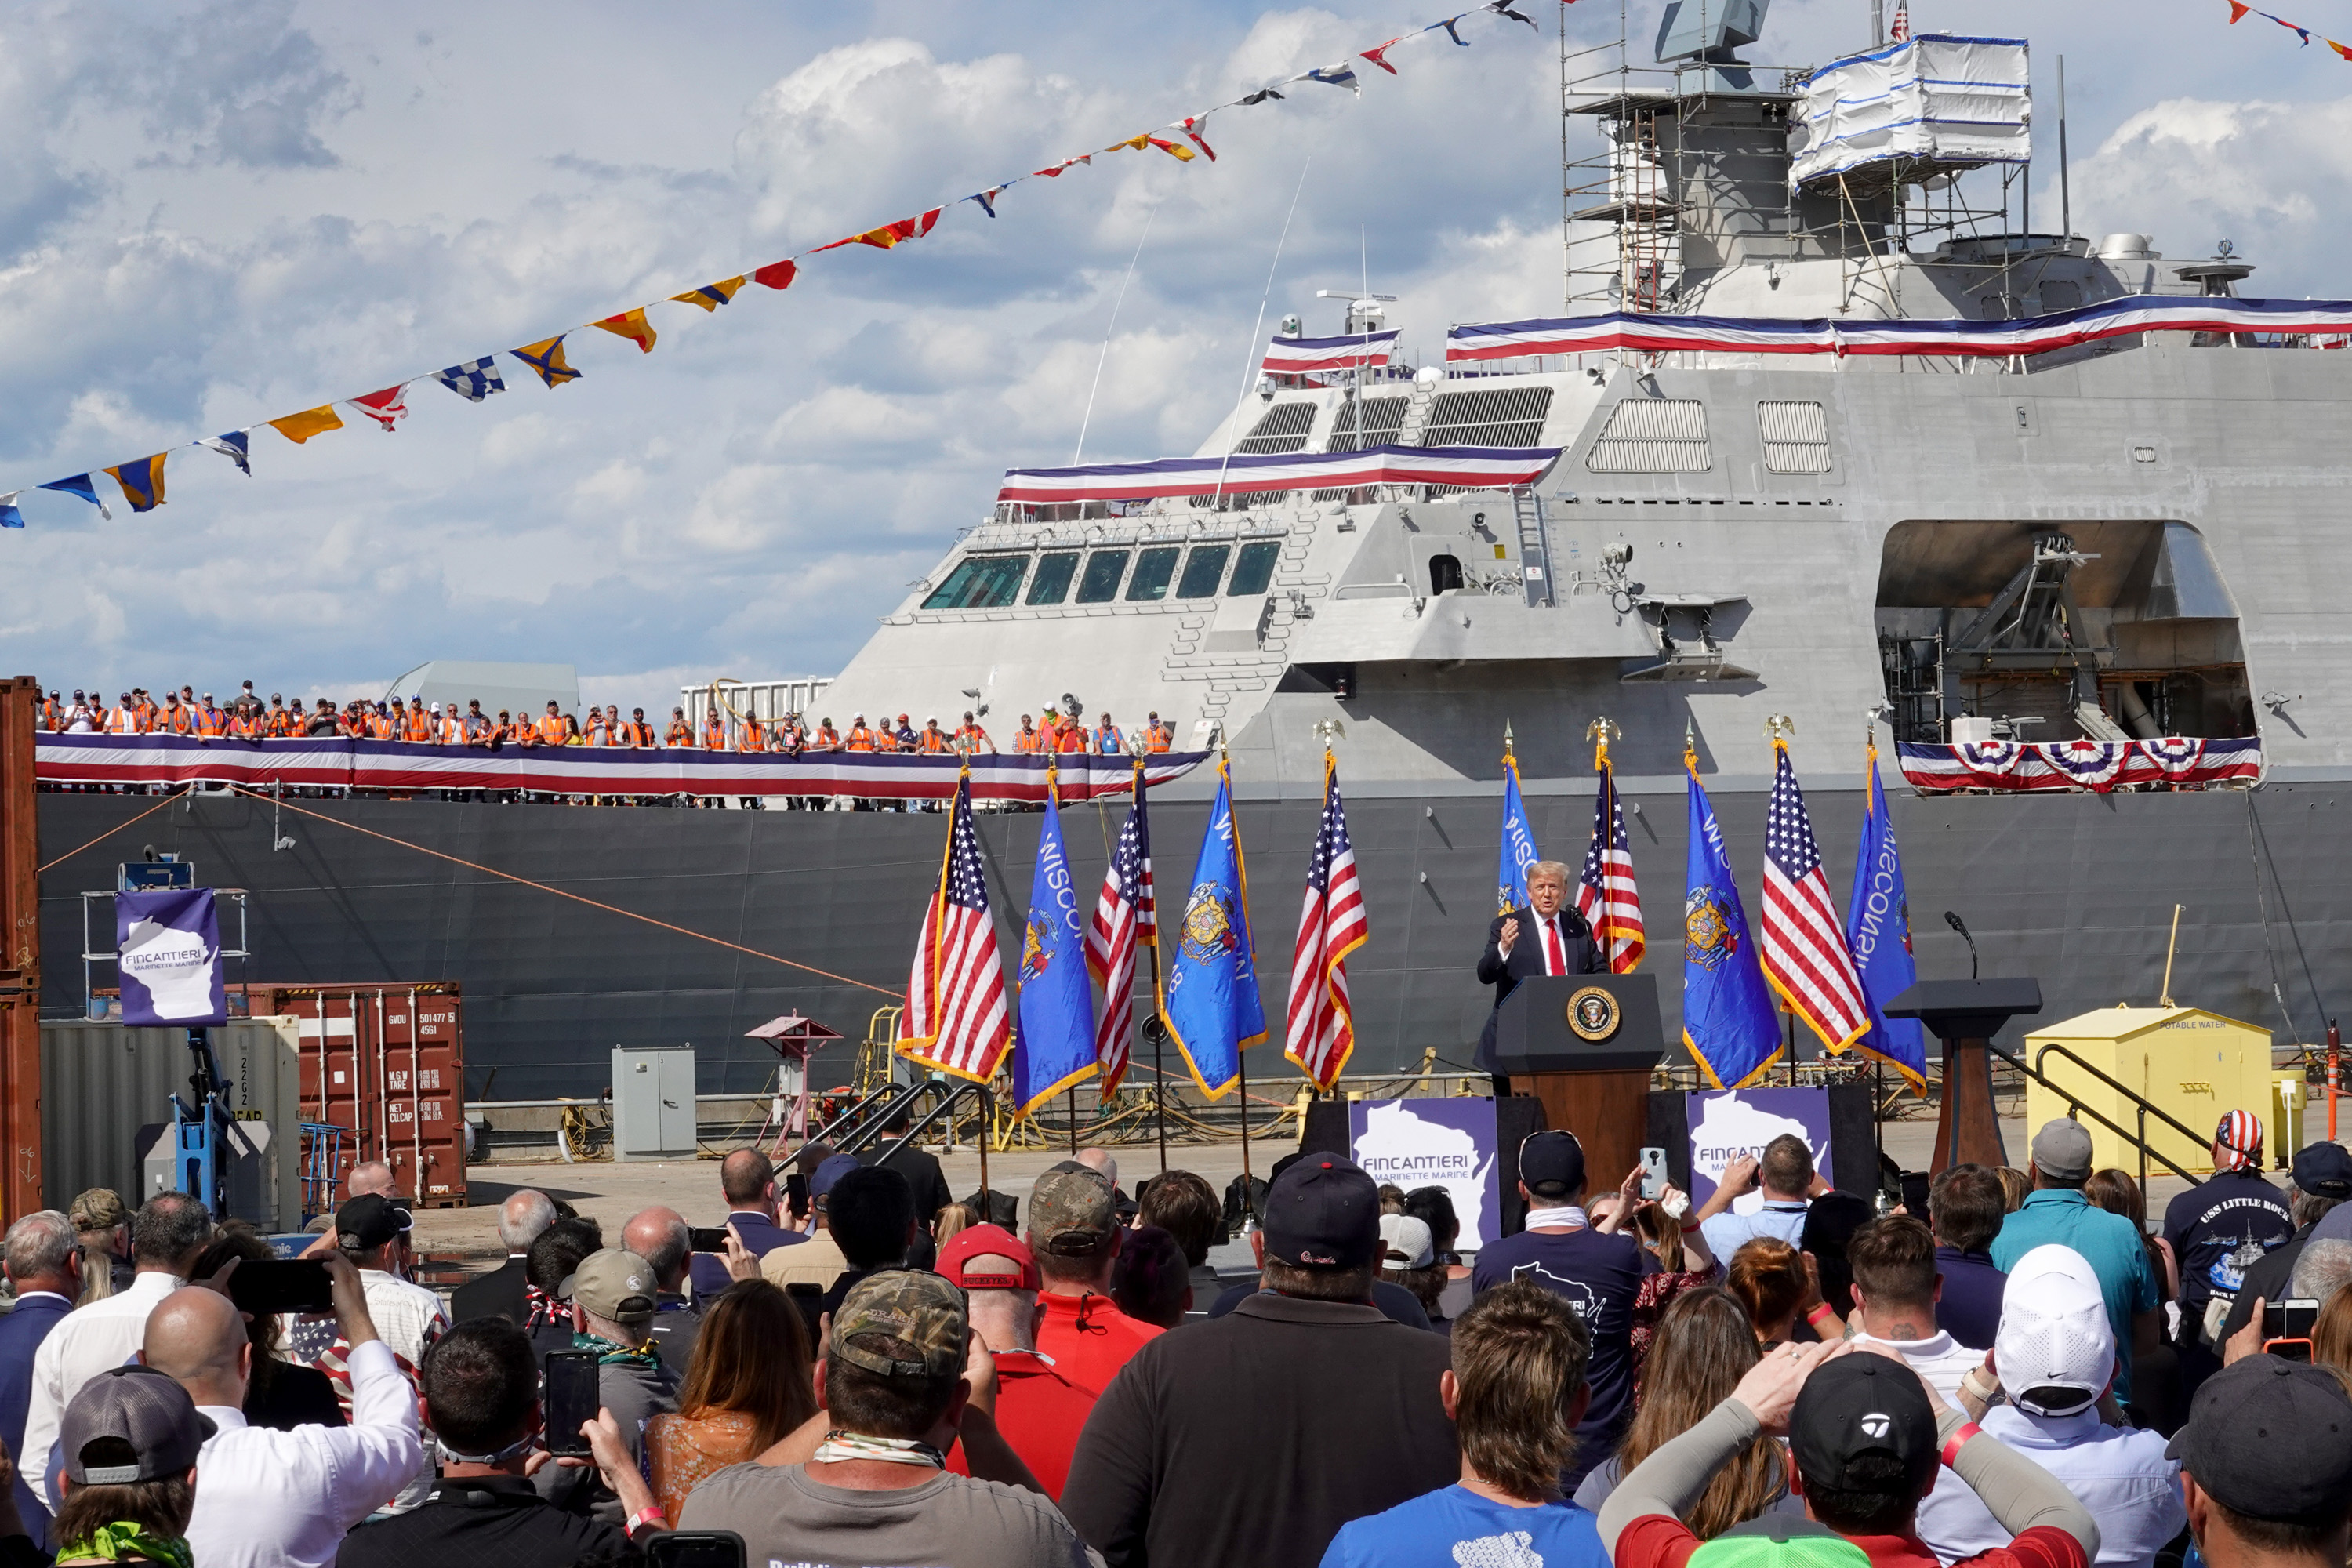 US President Donald Trump speaks to workers during a visit to the Fincantieri Marinette Marine shipyard on June 25, 2020 in Marinette, Wisconsin.